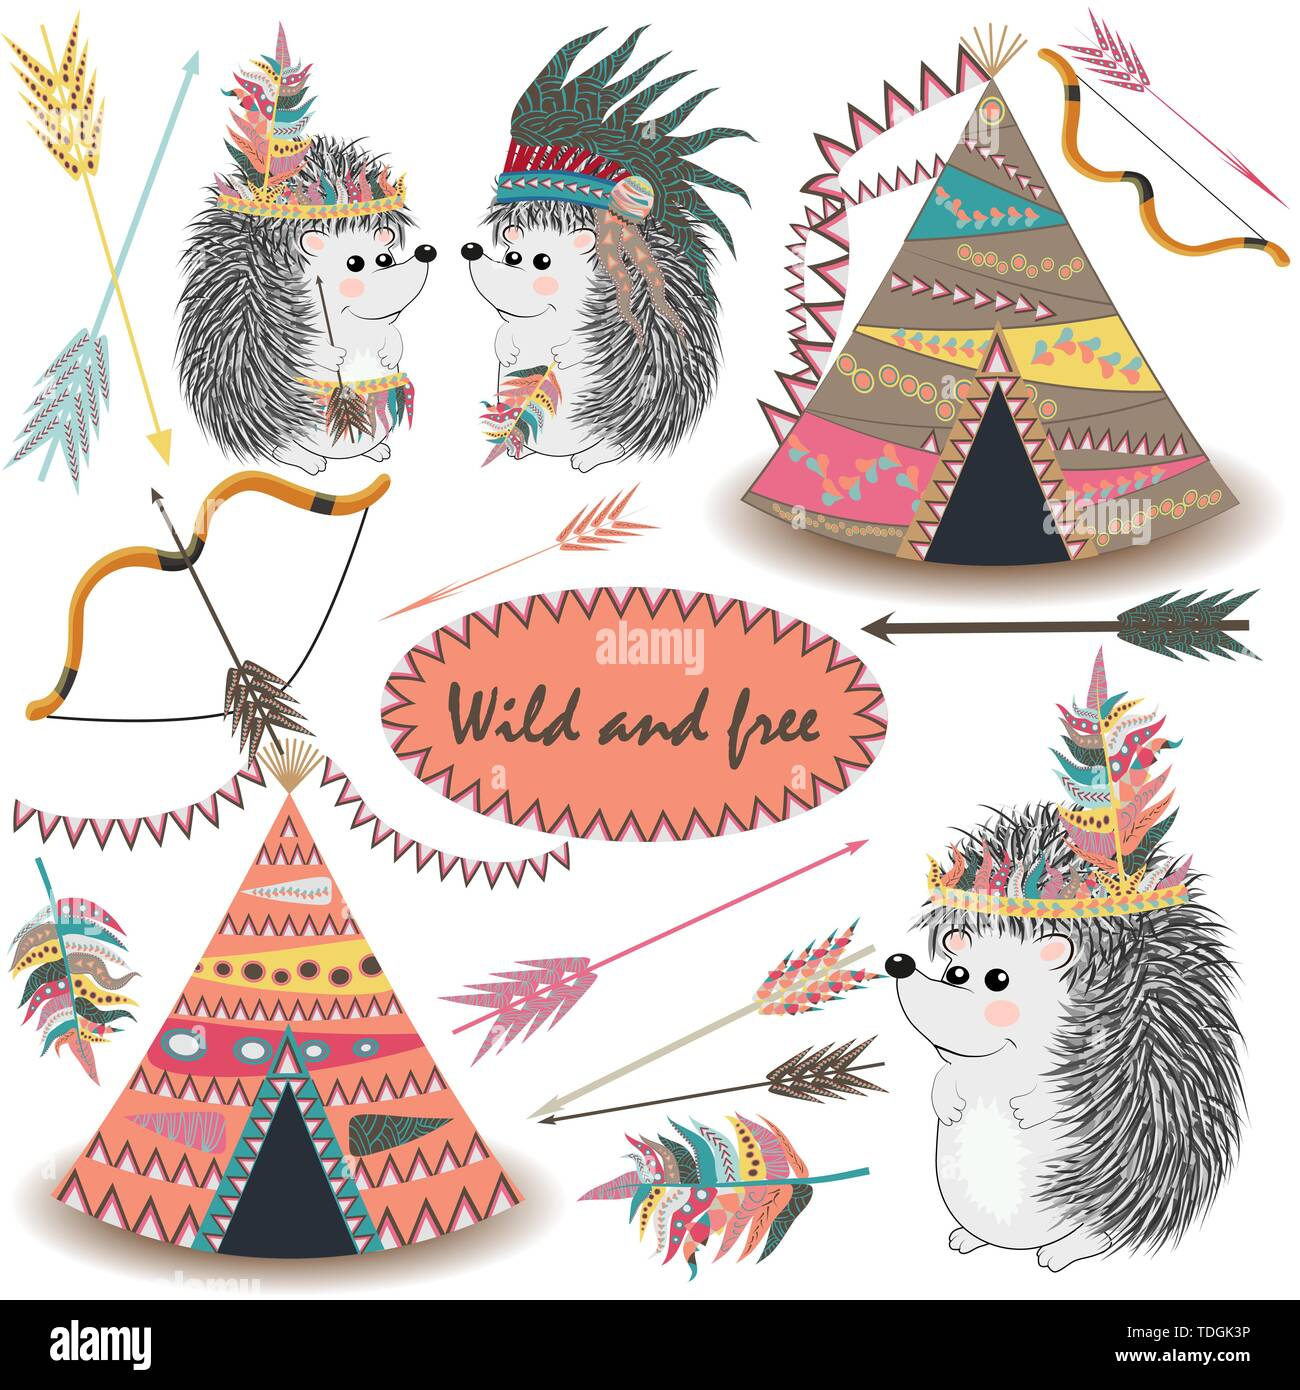 d14775671 Tribal Collections Set with teepee tens, arrows, feathers, tribal borders,  Indian hedgehog